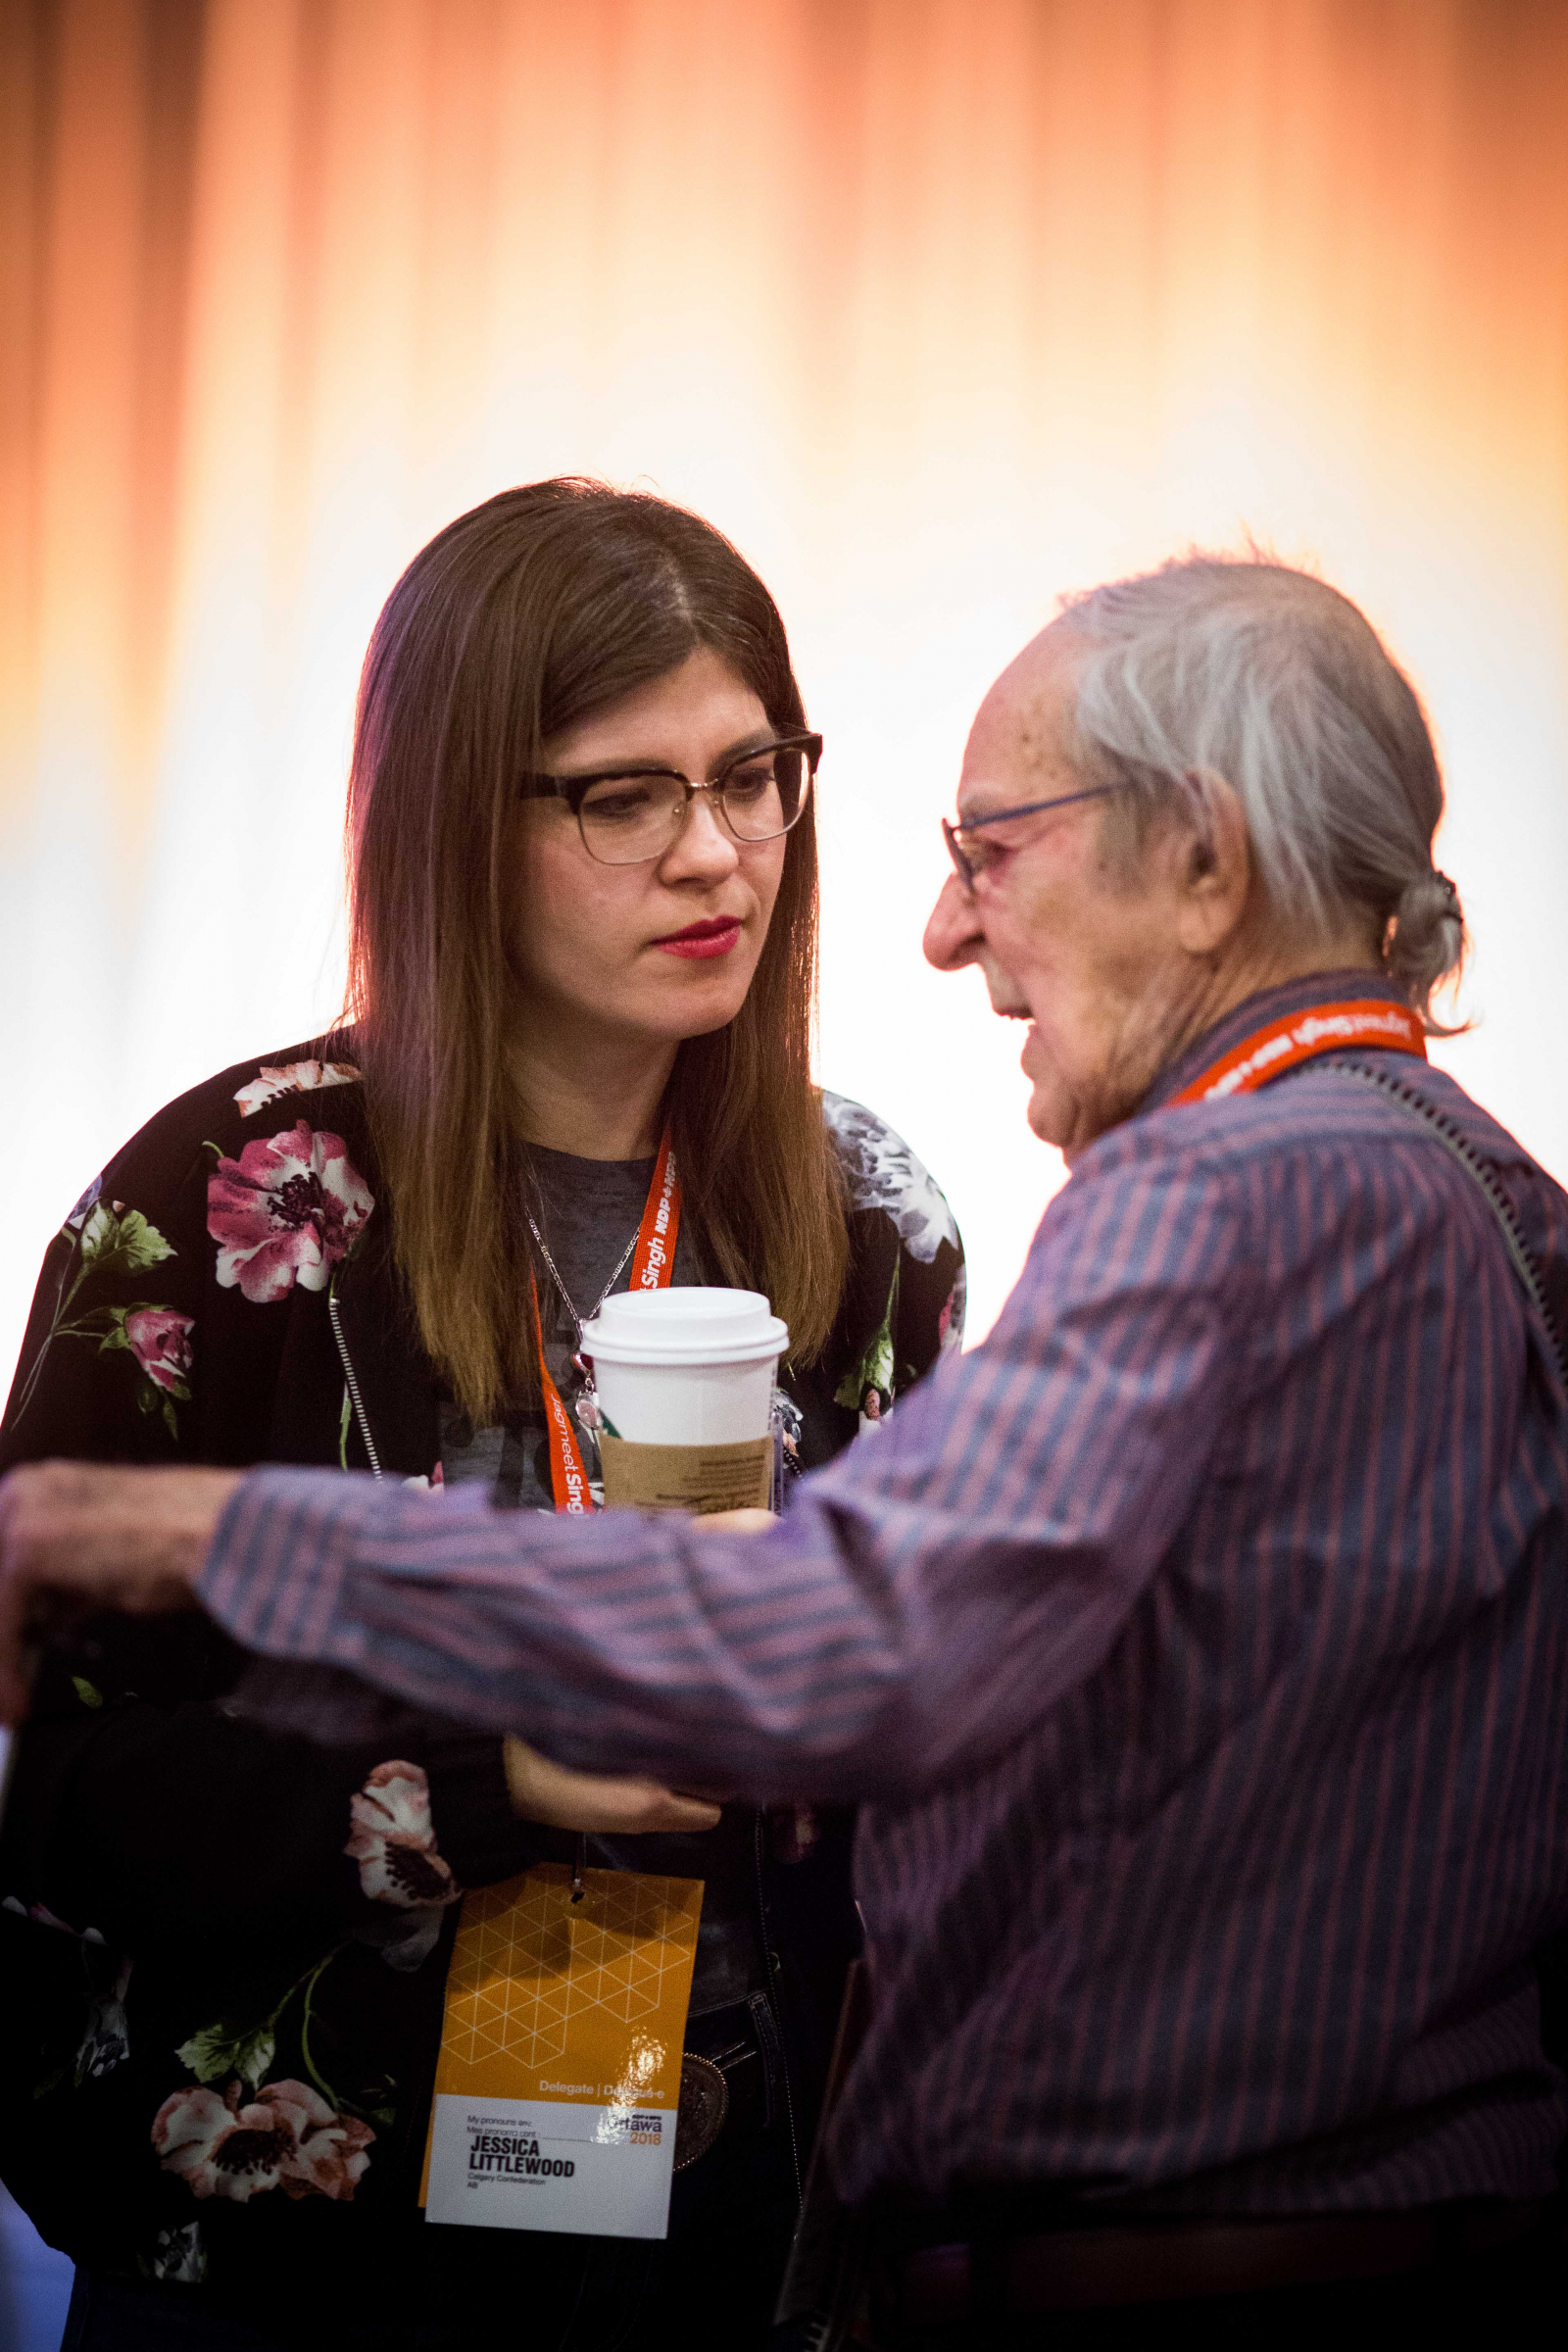 Alberta MLA Jessica Littlewood talks to a fellow NDP delegate at the party's national convention in Ottawa on Feb. 16, 2018. Photo by Alex Tétreault